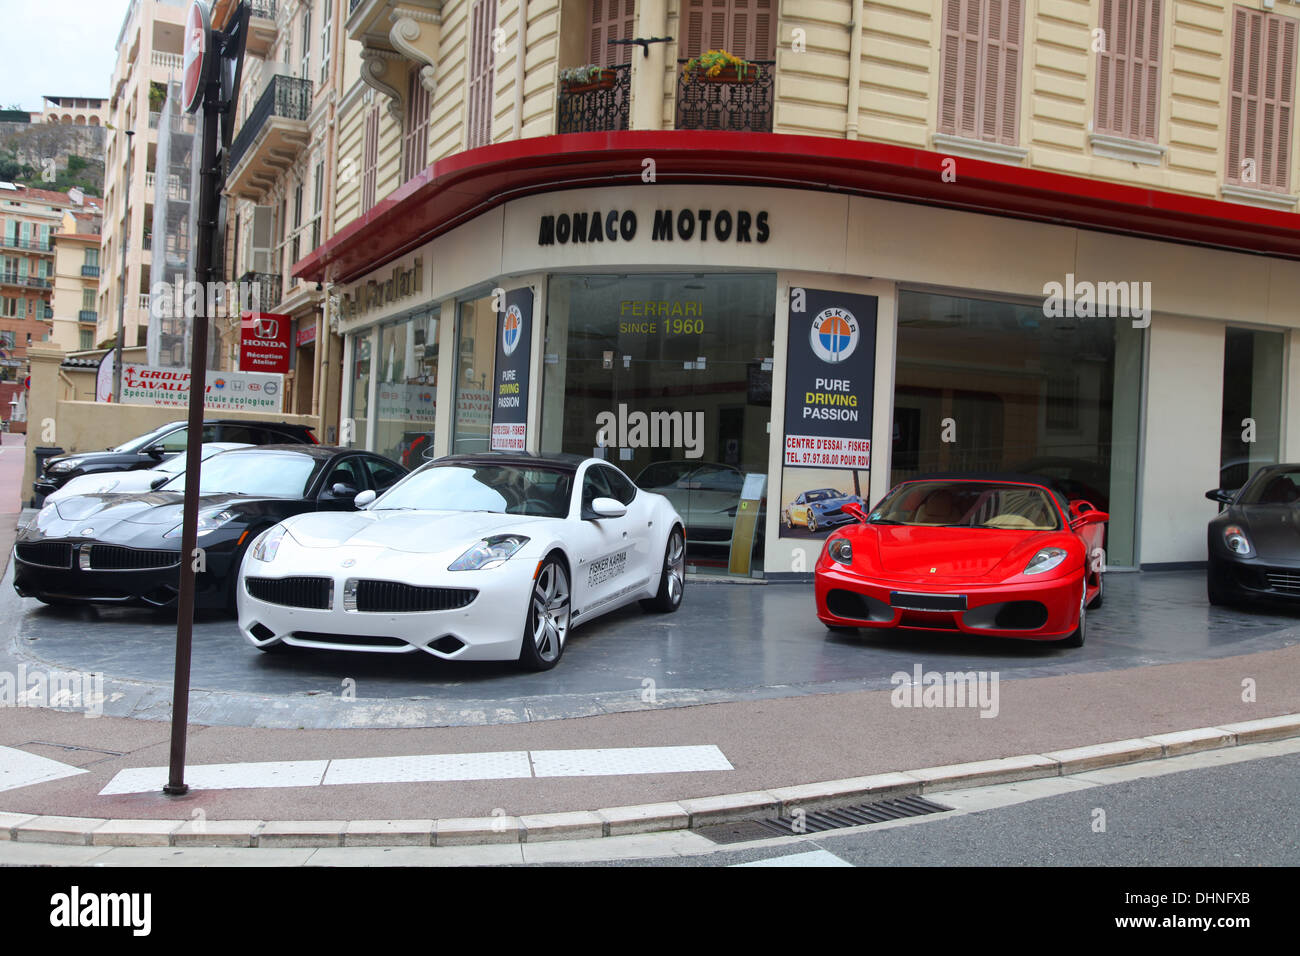 Used cars for sale in Monaco Stock Photo: 62553747 - Alamy